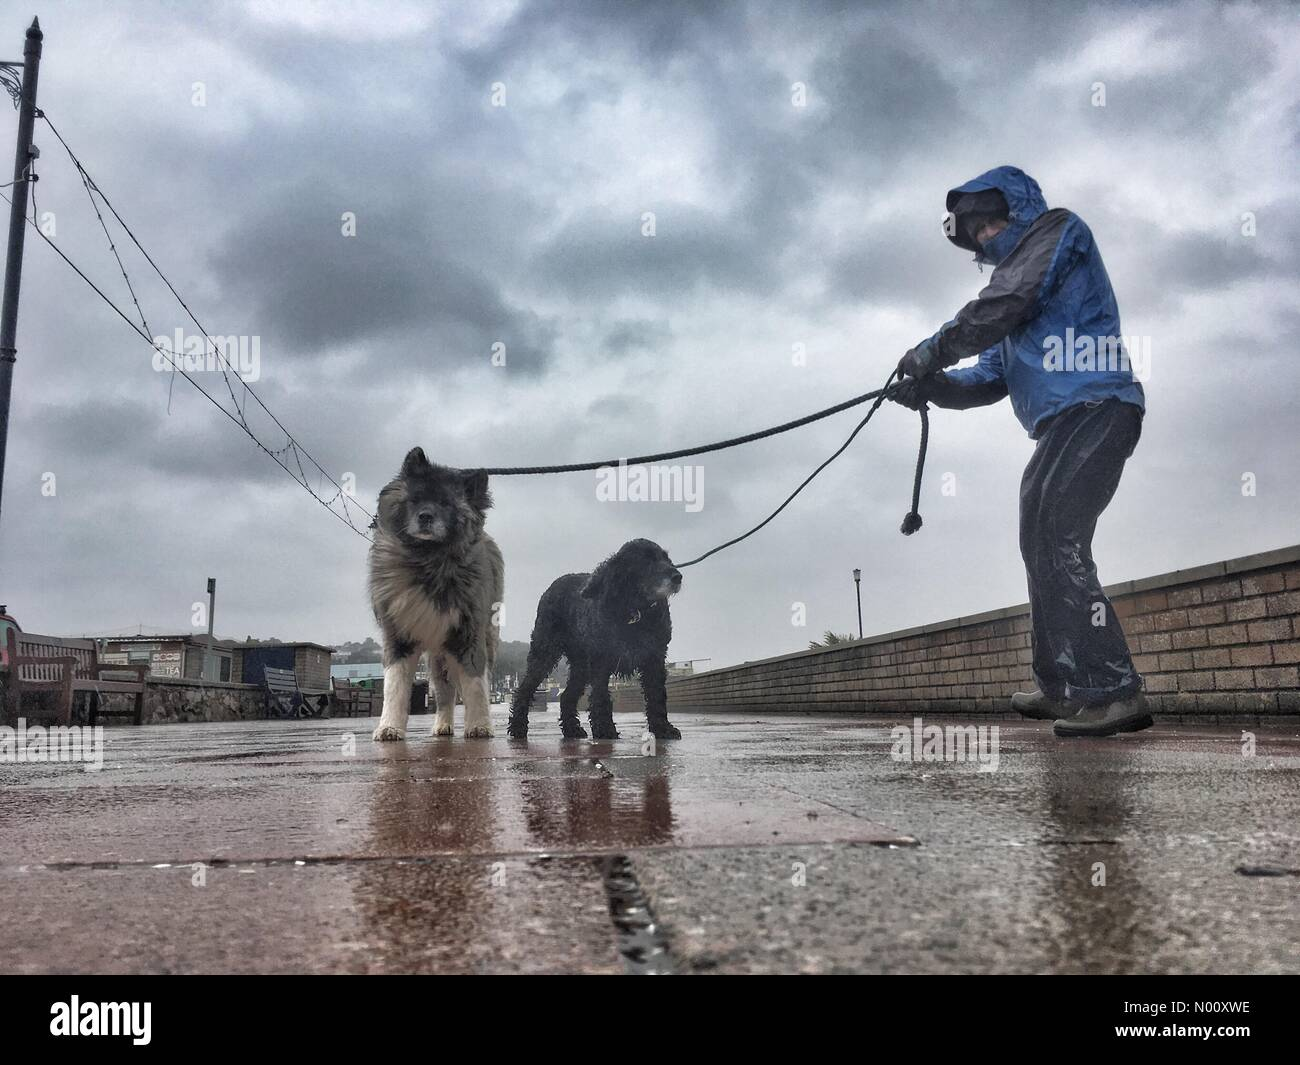 Teignmouth, Devon. 12th Oct 2018. UK Weather: Storm Callum. Wet and windy for dog walkers at Teignmouth Credit: nidpor/StockimoNews/Alamy Live News - Stock Image